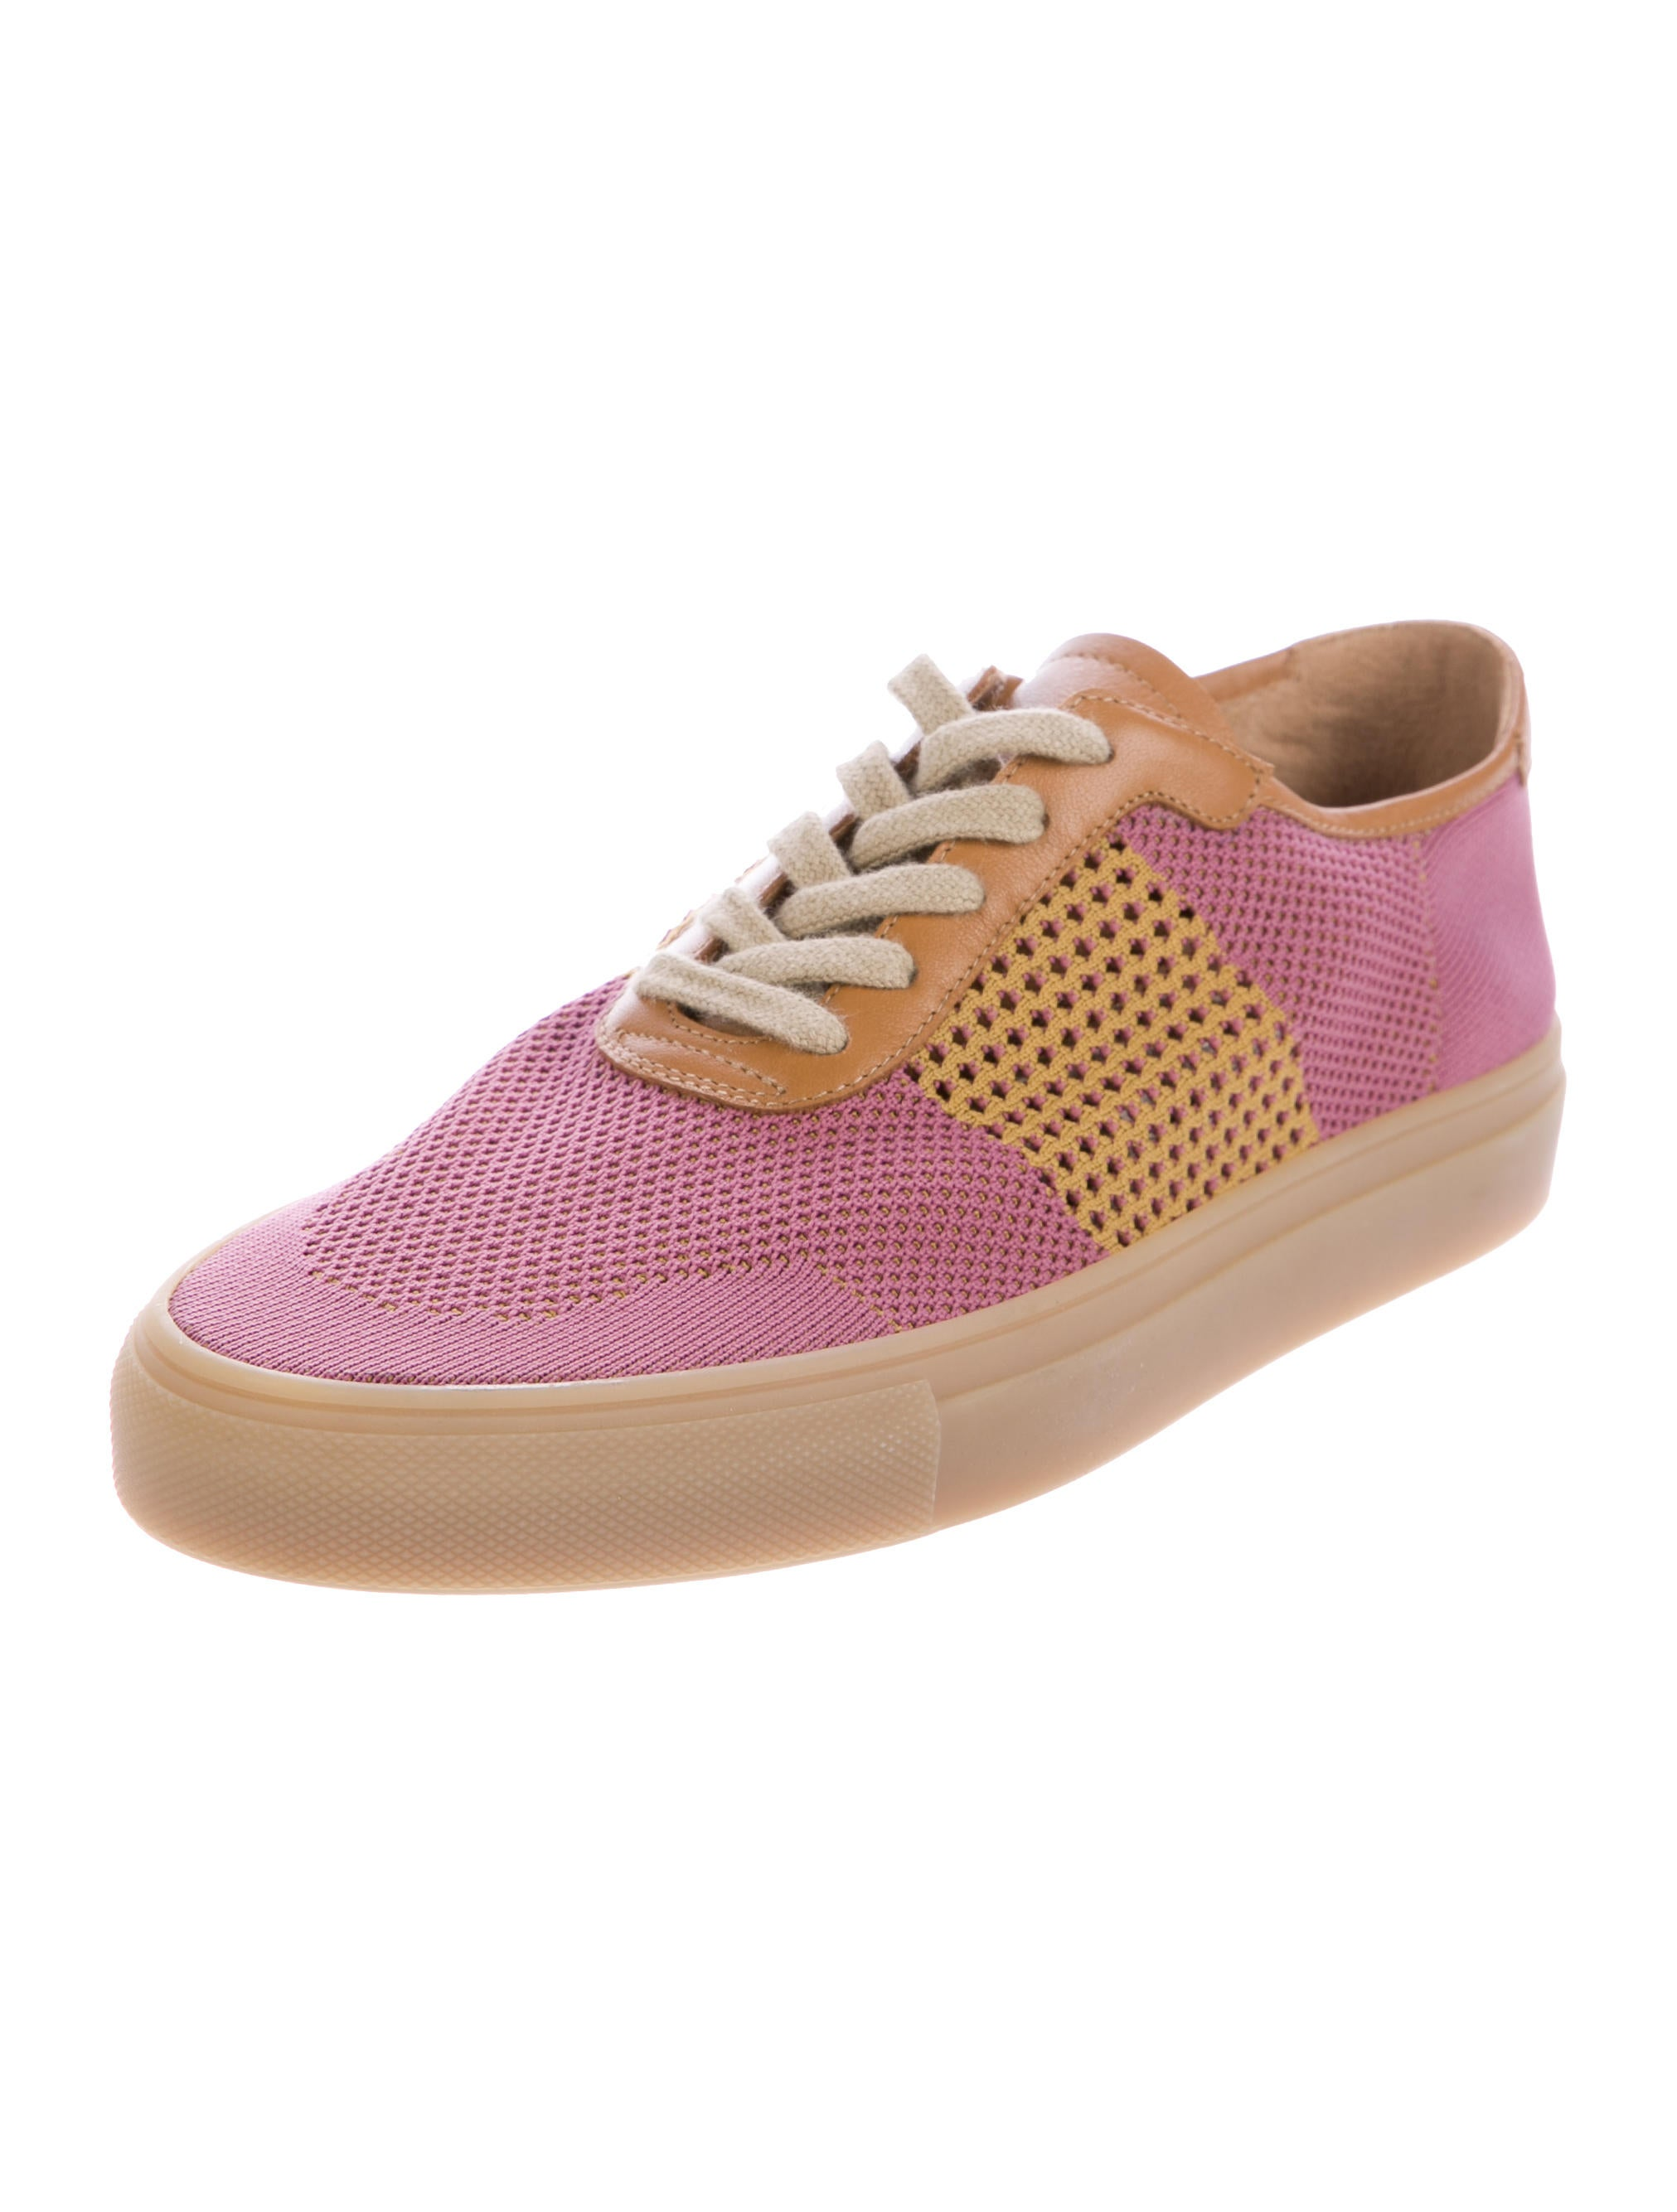 Dries Van Noten Knit Low-Top Sneakers outlet free shipping authentic gBXB3Y